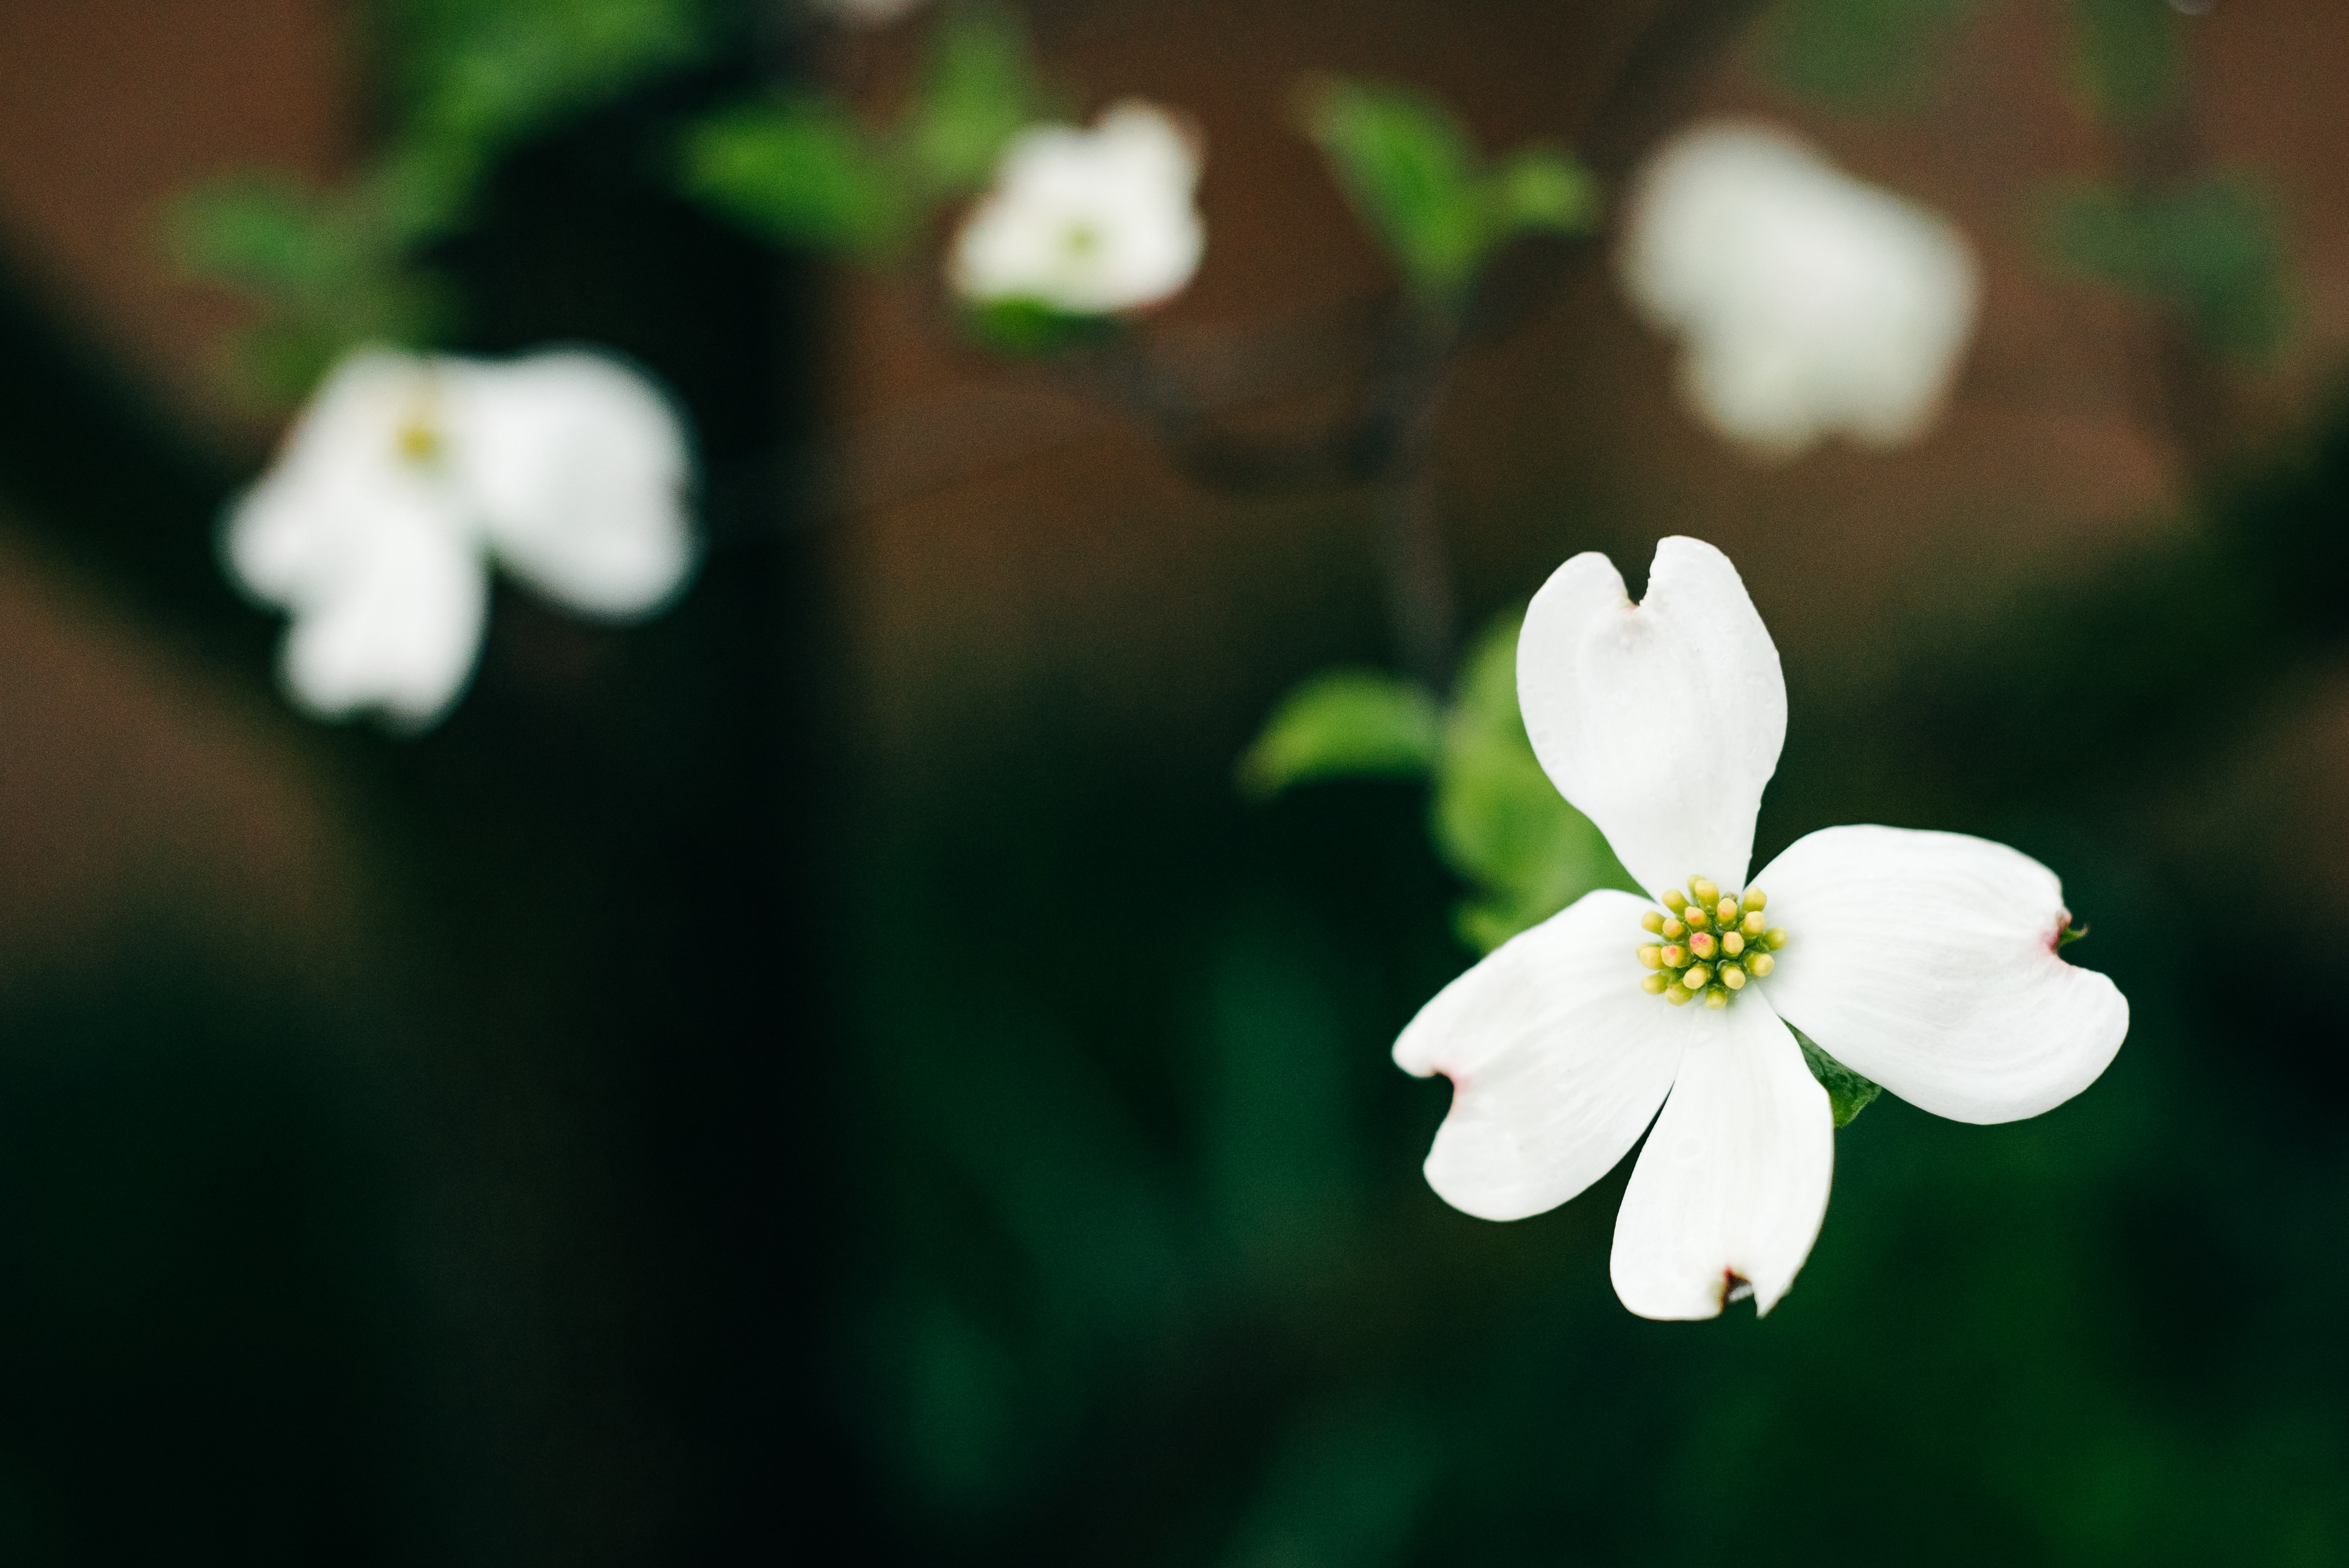 Macro shot of white flower with green stem and leaves in Spring